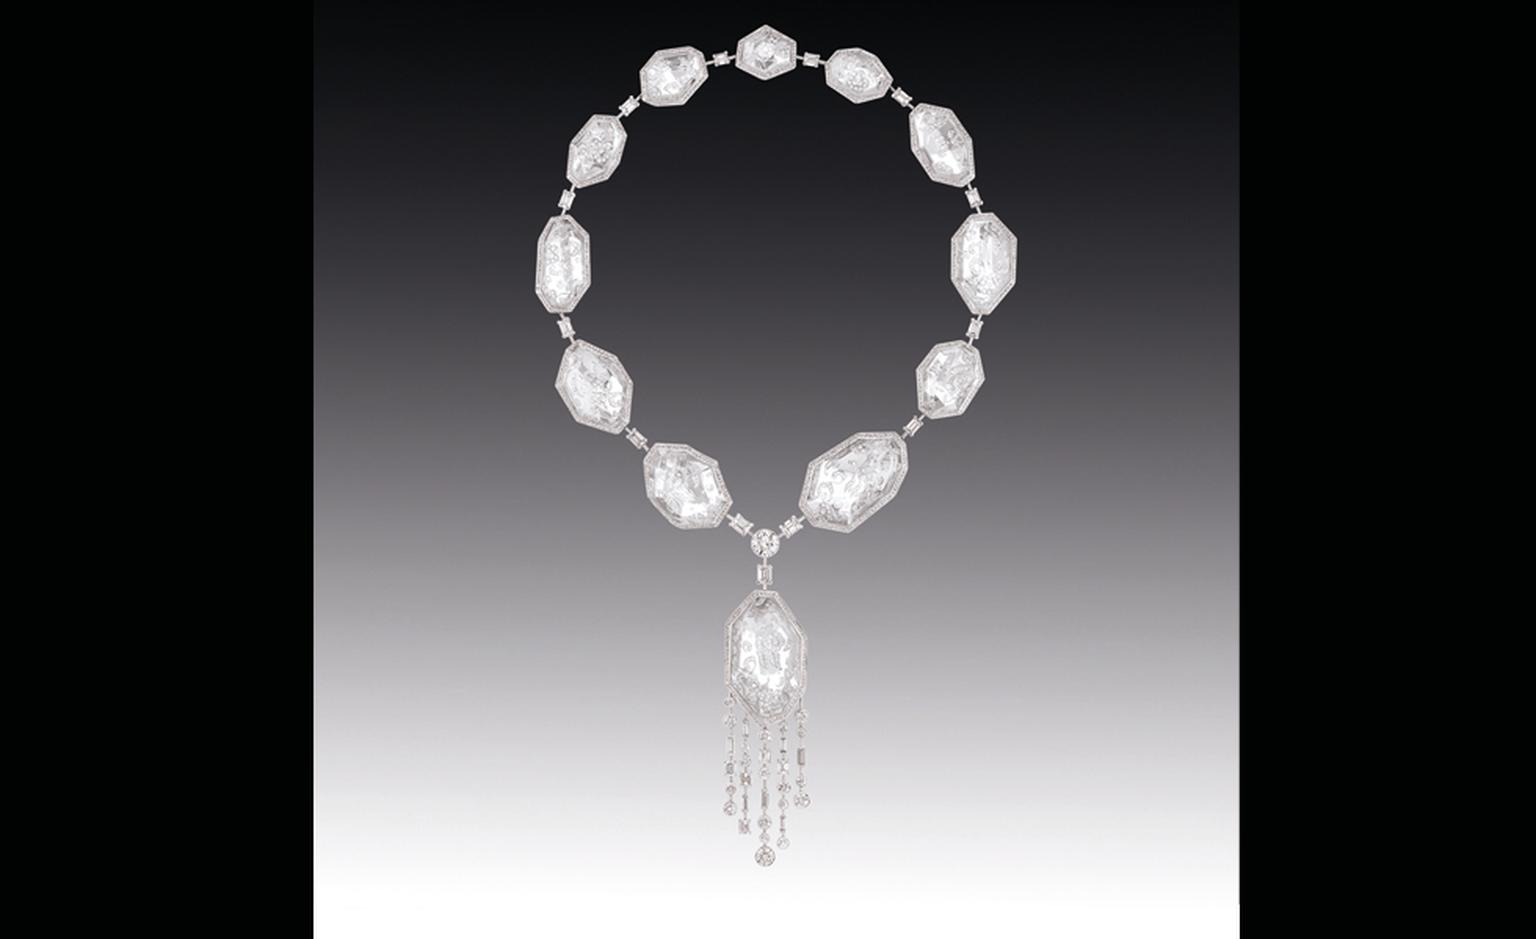 Chanel Contrastes collection: Collier Pluie de Cristal. Necklace in white gold and diamonds.